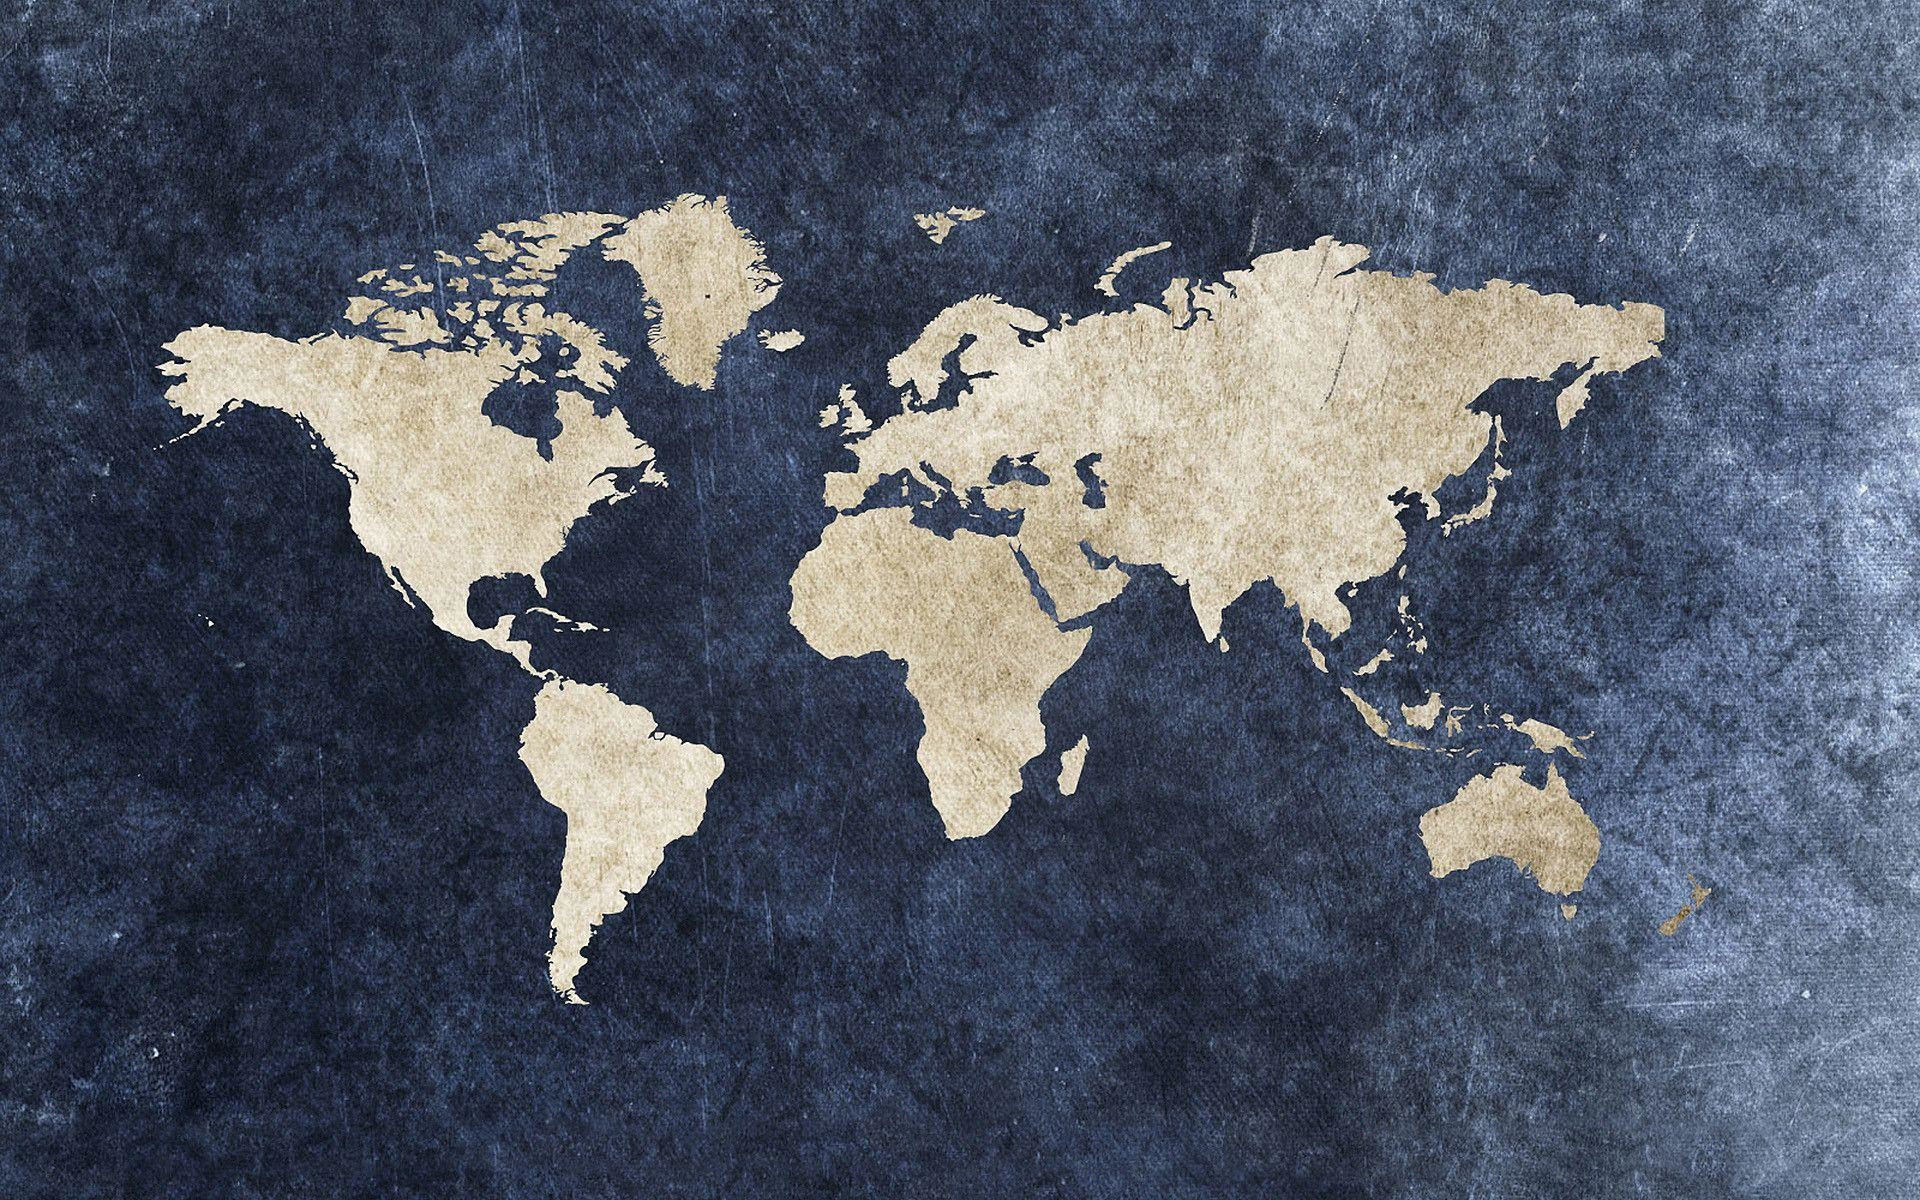 Global map wallpaper 1920x1200 world map wallpapers full hd wallpaper search gumiabroncs Gallery